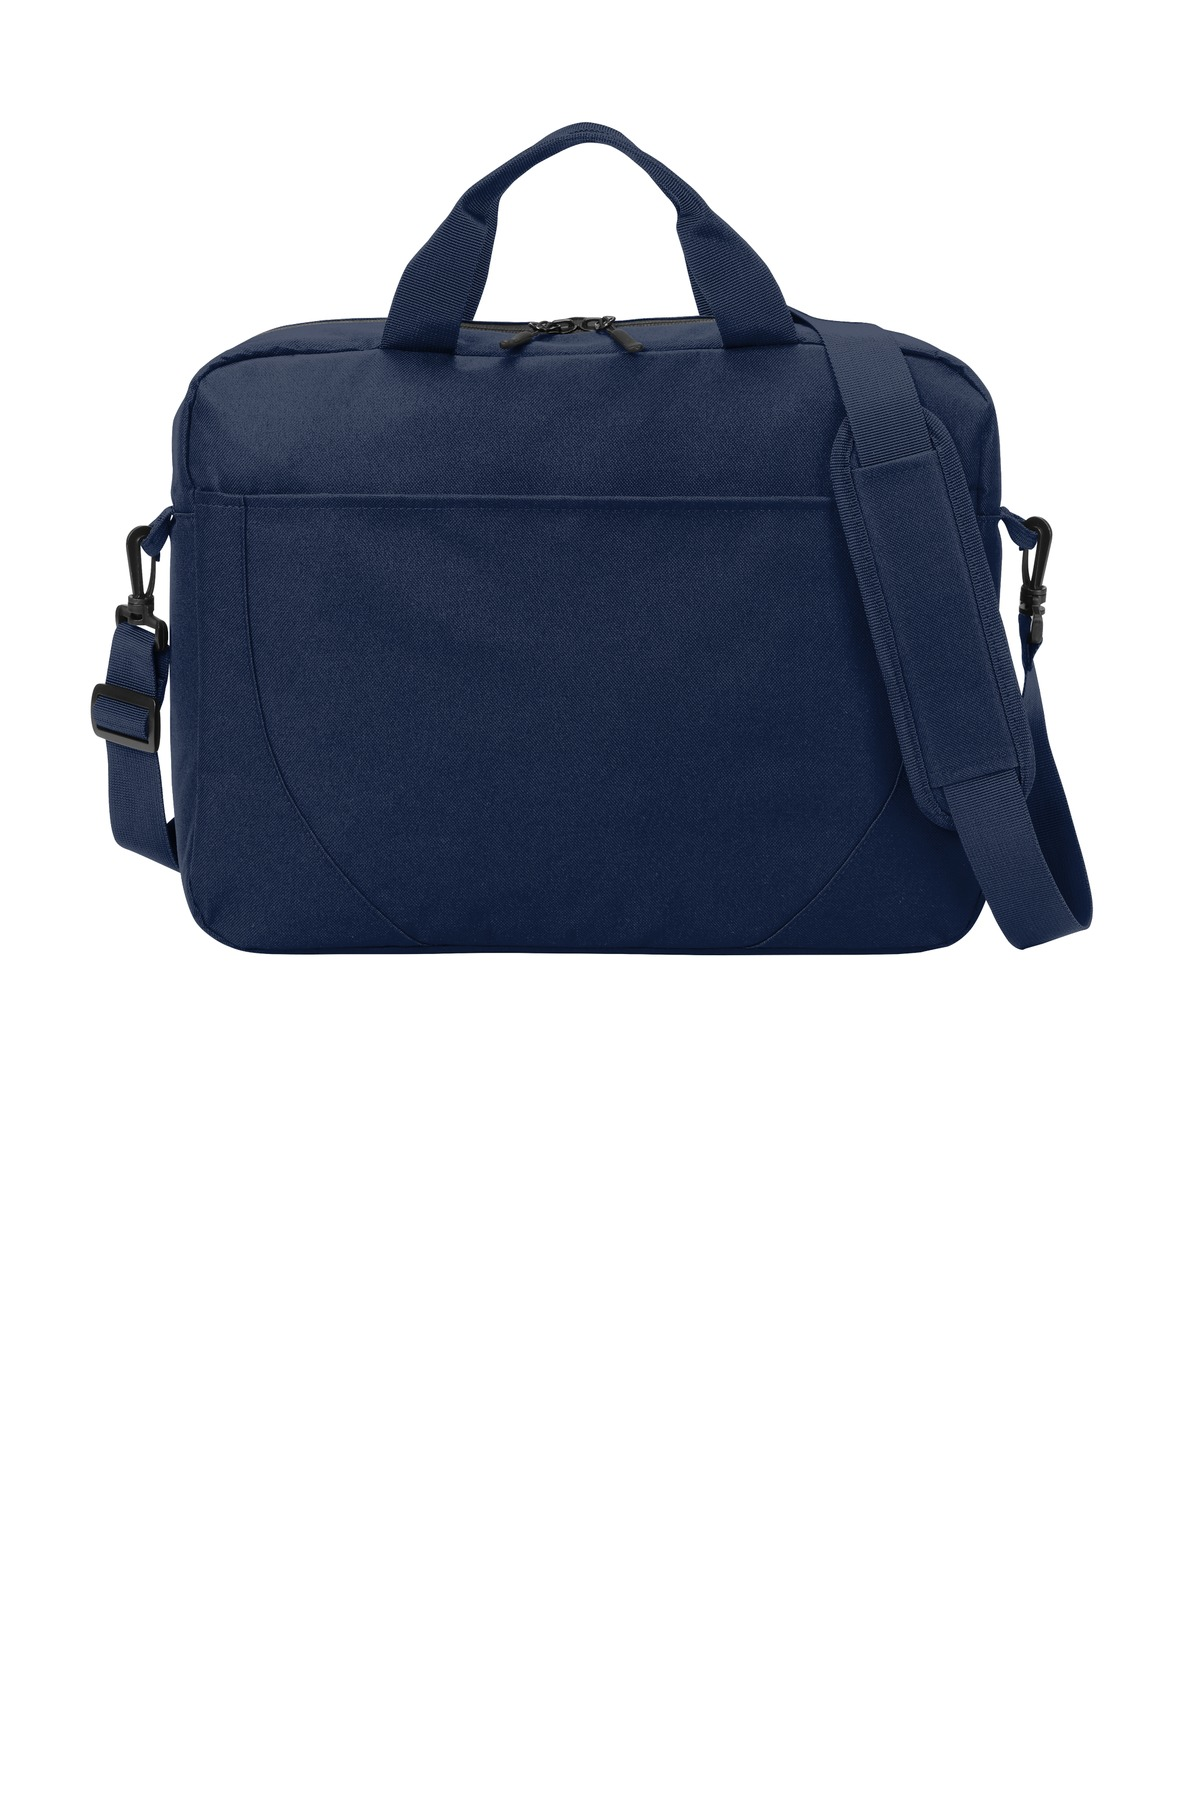 Port Authority  ®  Access Briefcase. BG318 - River Blue Navy